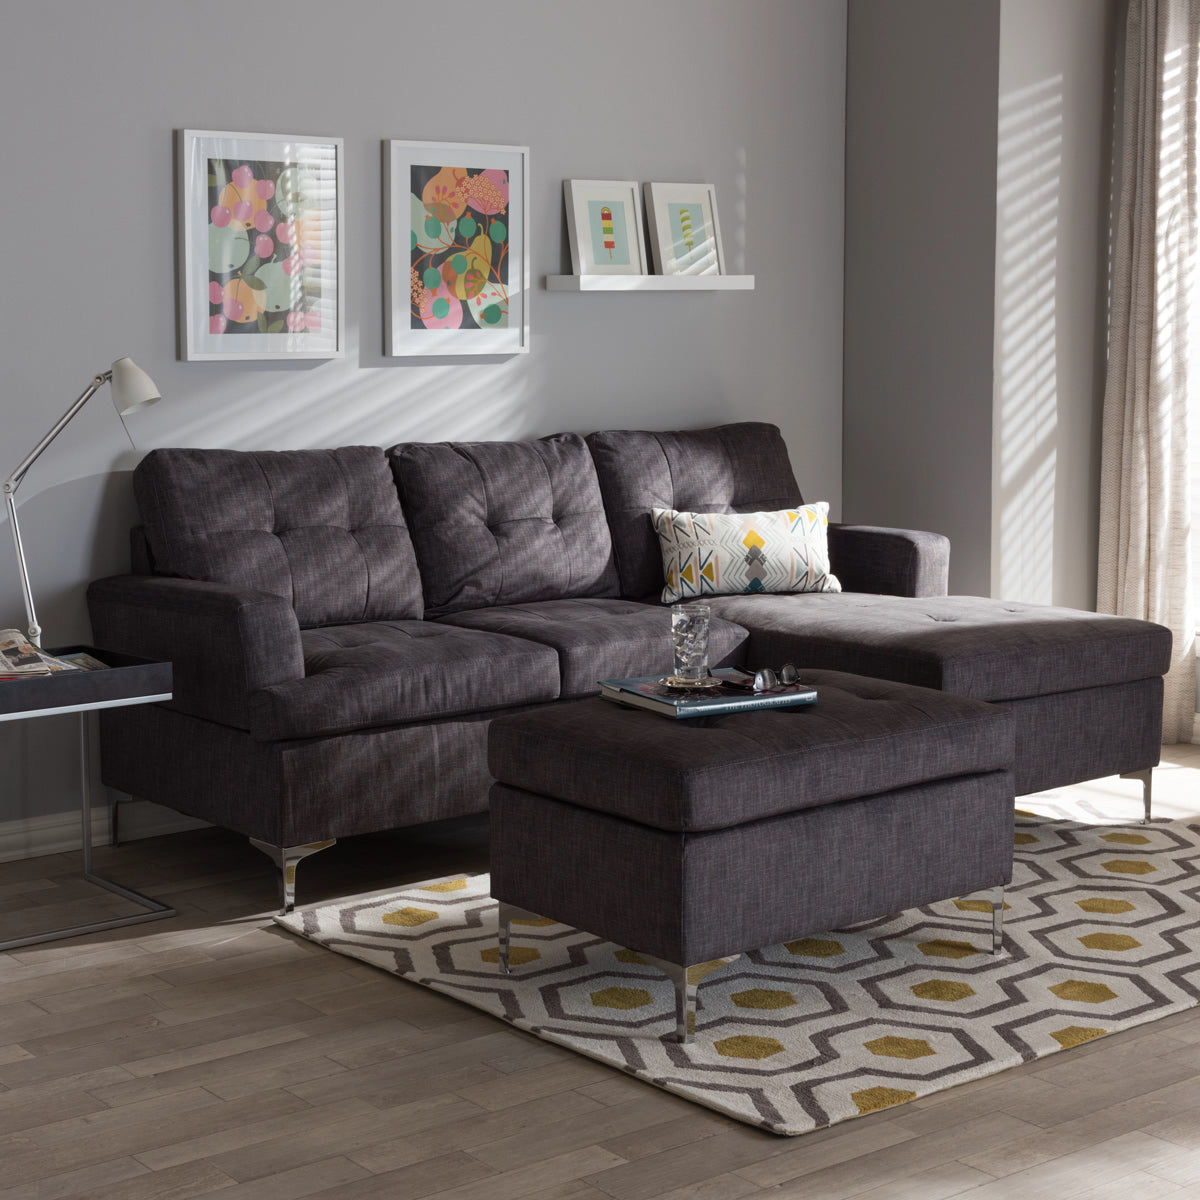 Baxton Studio Riley Modern and Contemporary Grey Fabric Upholstered 3-Piece Sectional Sofa with Ottoman Set Baxton Studio-sectionals-Minimal And Modern - 1